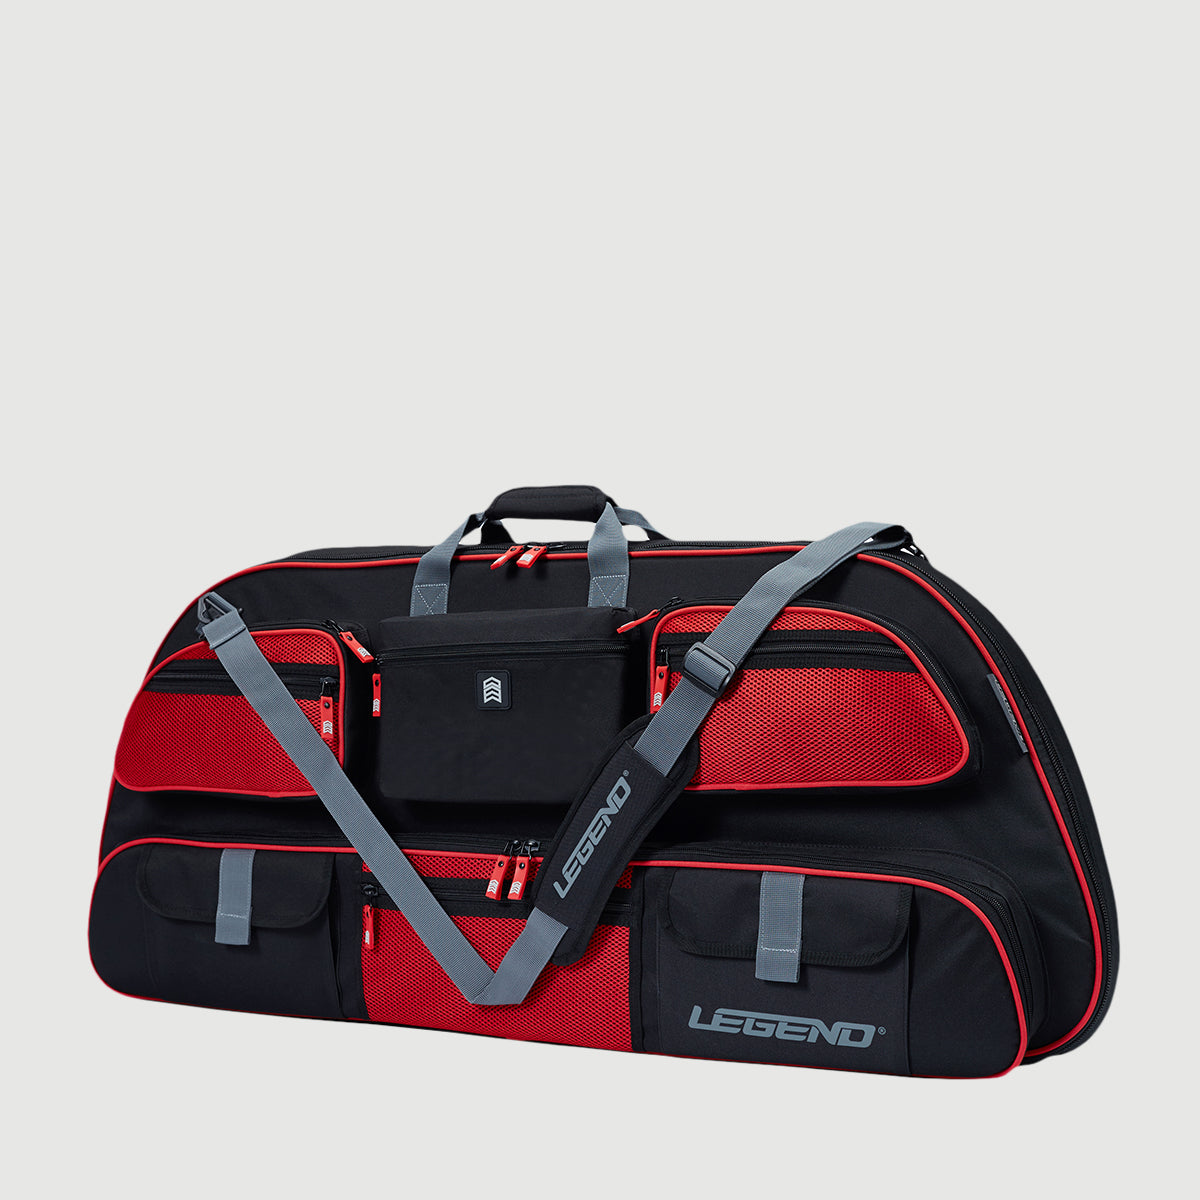 Legend Apollo Compound Bow Case | Lightweight-Legend Outdoor Industries